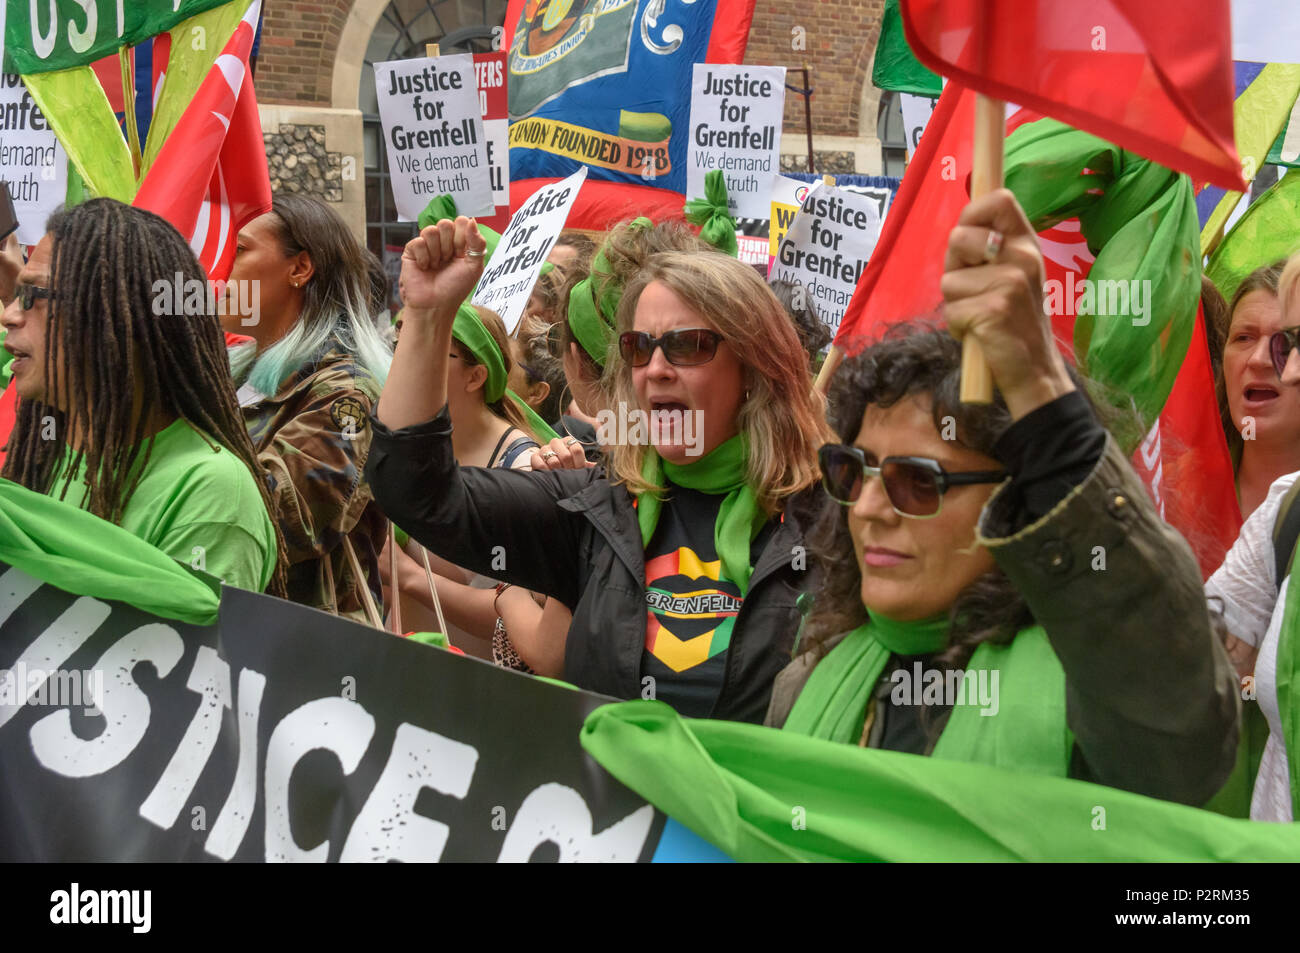 London, UK. 16th June 2018. People march back from the Home Office to Downing St in solidarity with the 72 killed and the survivors of the Grenfell fire a year ago at a protest organised by Justice4Grenfell and the FBU (Fire Brigades Union.) After some speeches they marched to the Home Office for a brief protest before returning to Downing St for more speeches. mmodati Credit: Peter Marshall/Alamy Live News - Stock Image